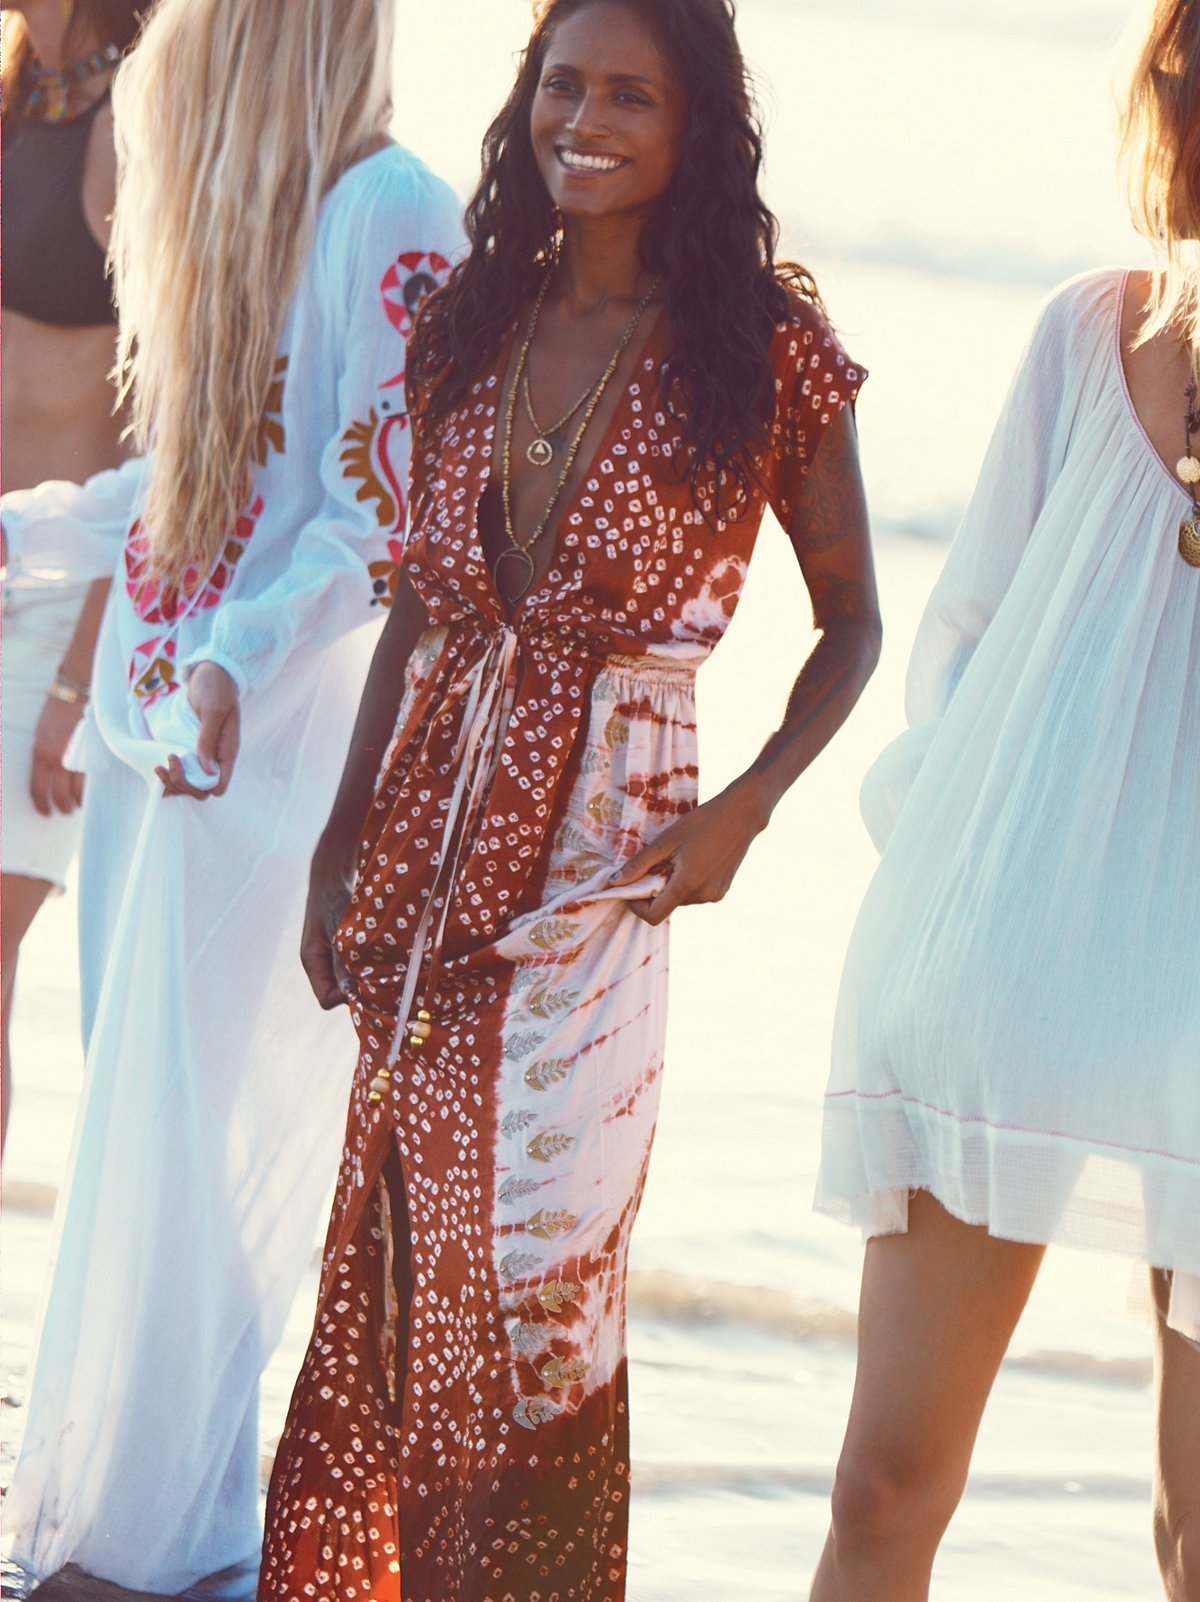 Embroidered Knot Tie Dye Robe